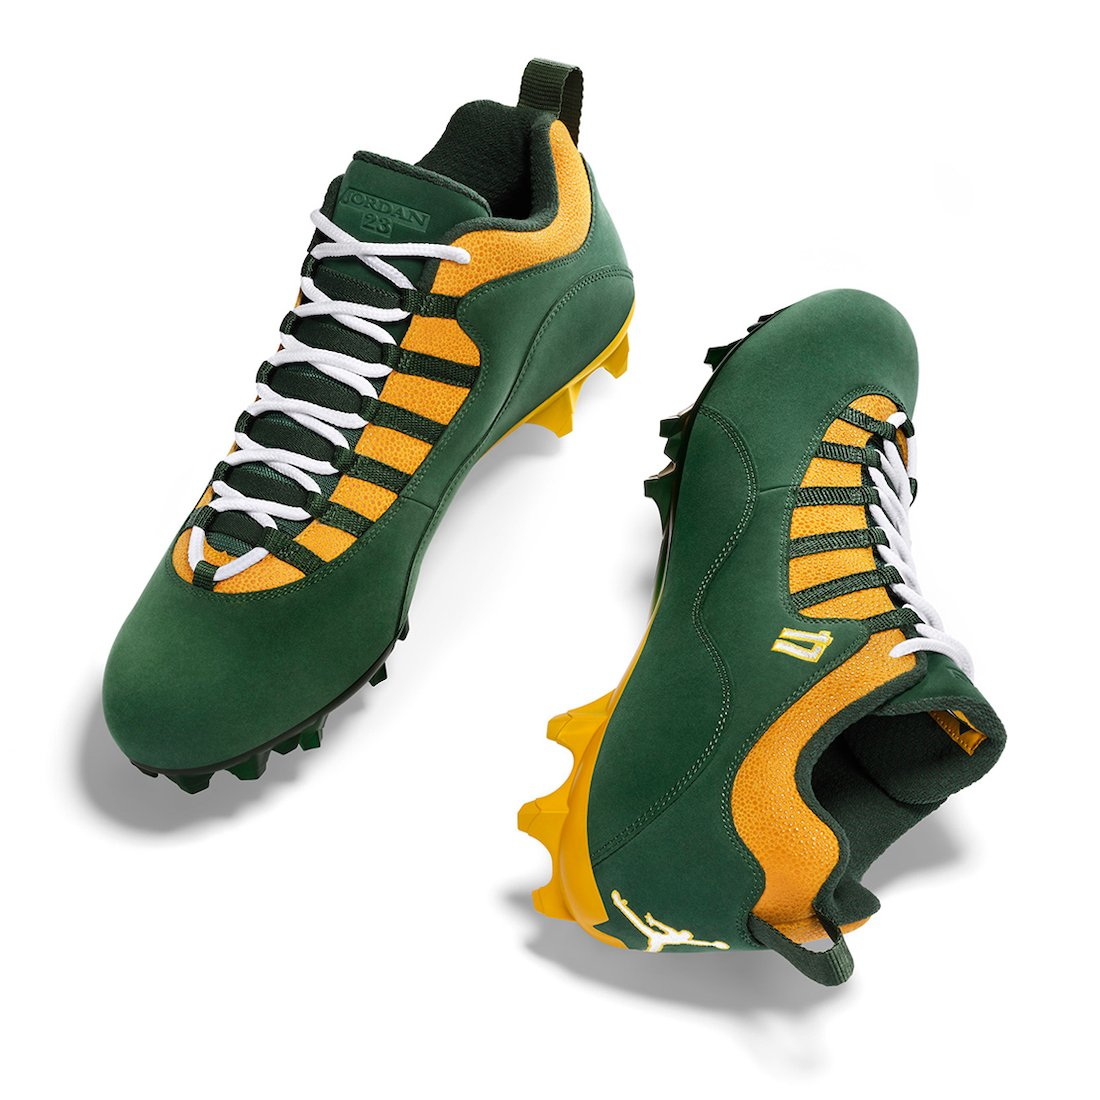 Devante Adams Air Jordan 10 NFL 2020 PE Cleats